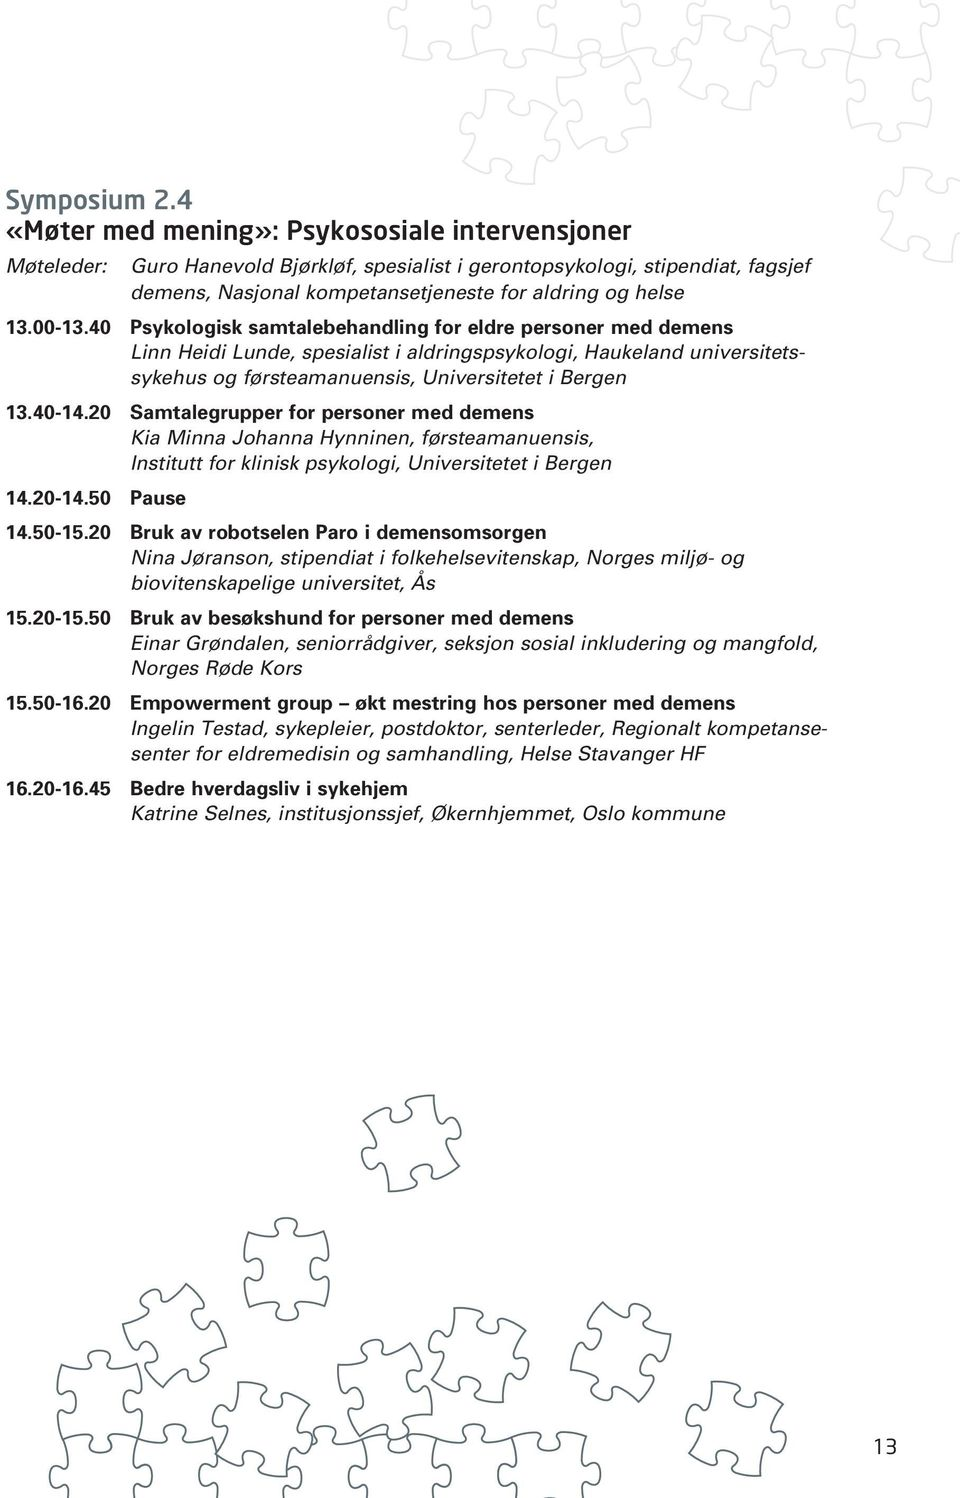 20 Samtalegrupper for personer med demens Kia Minna Johanna Hynninen, førsteamanuensis, Institutt for klinisk psykologi, Universitetet i Bergen 14.20-14.50 Pause 14.50-15.